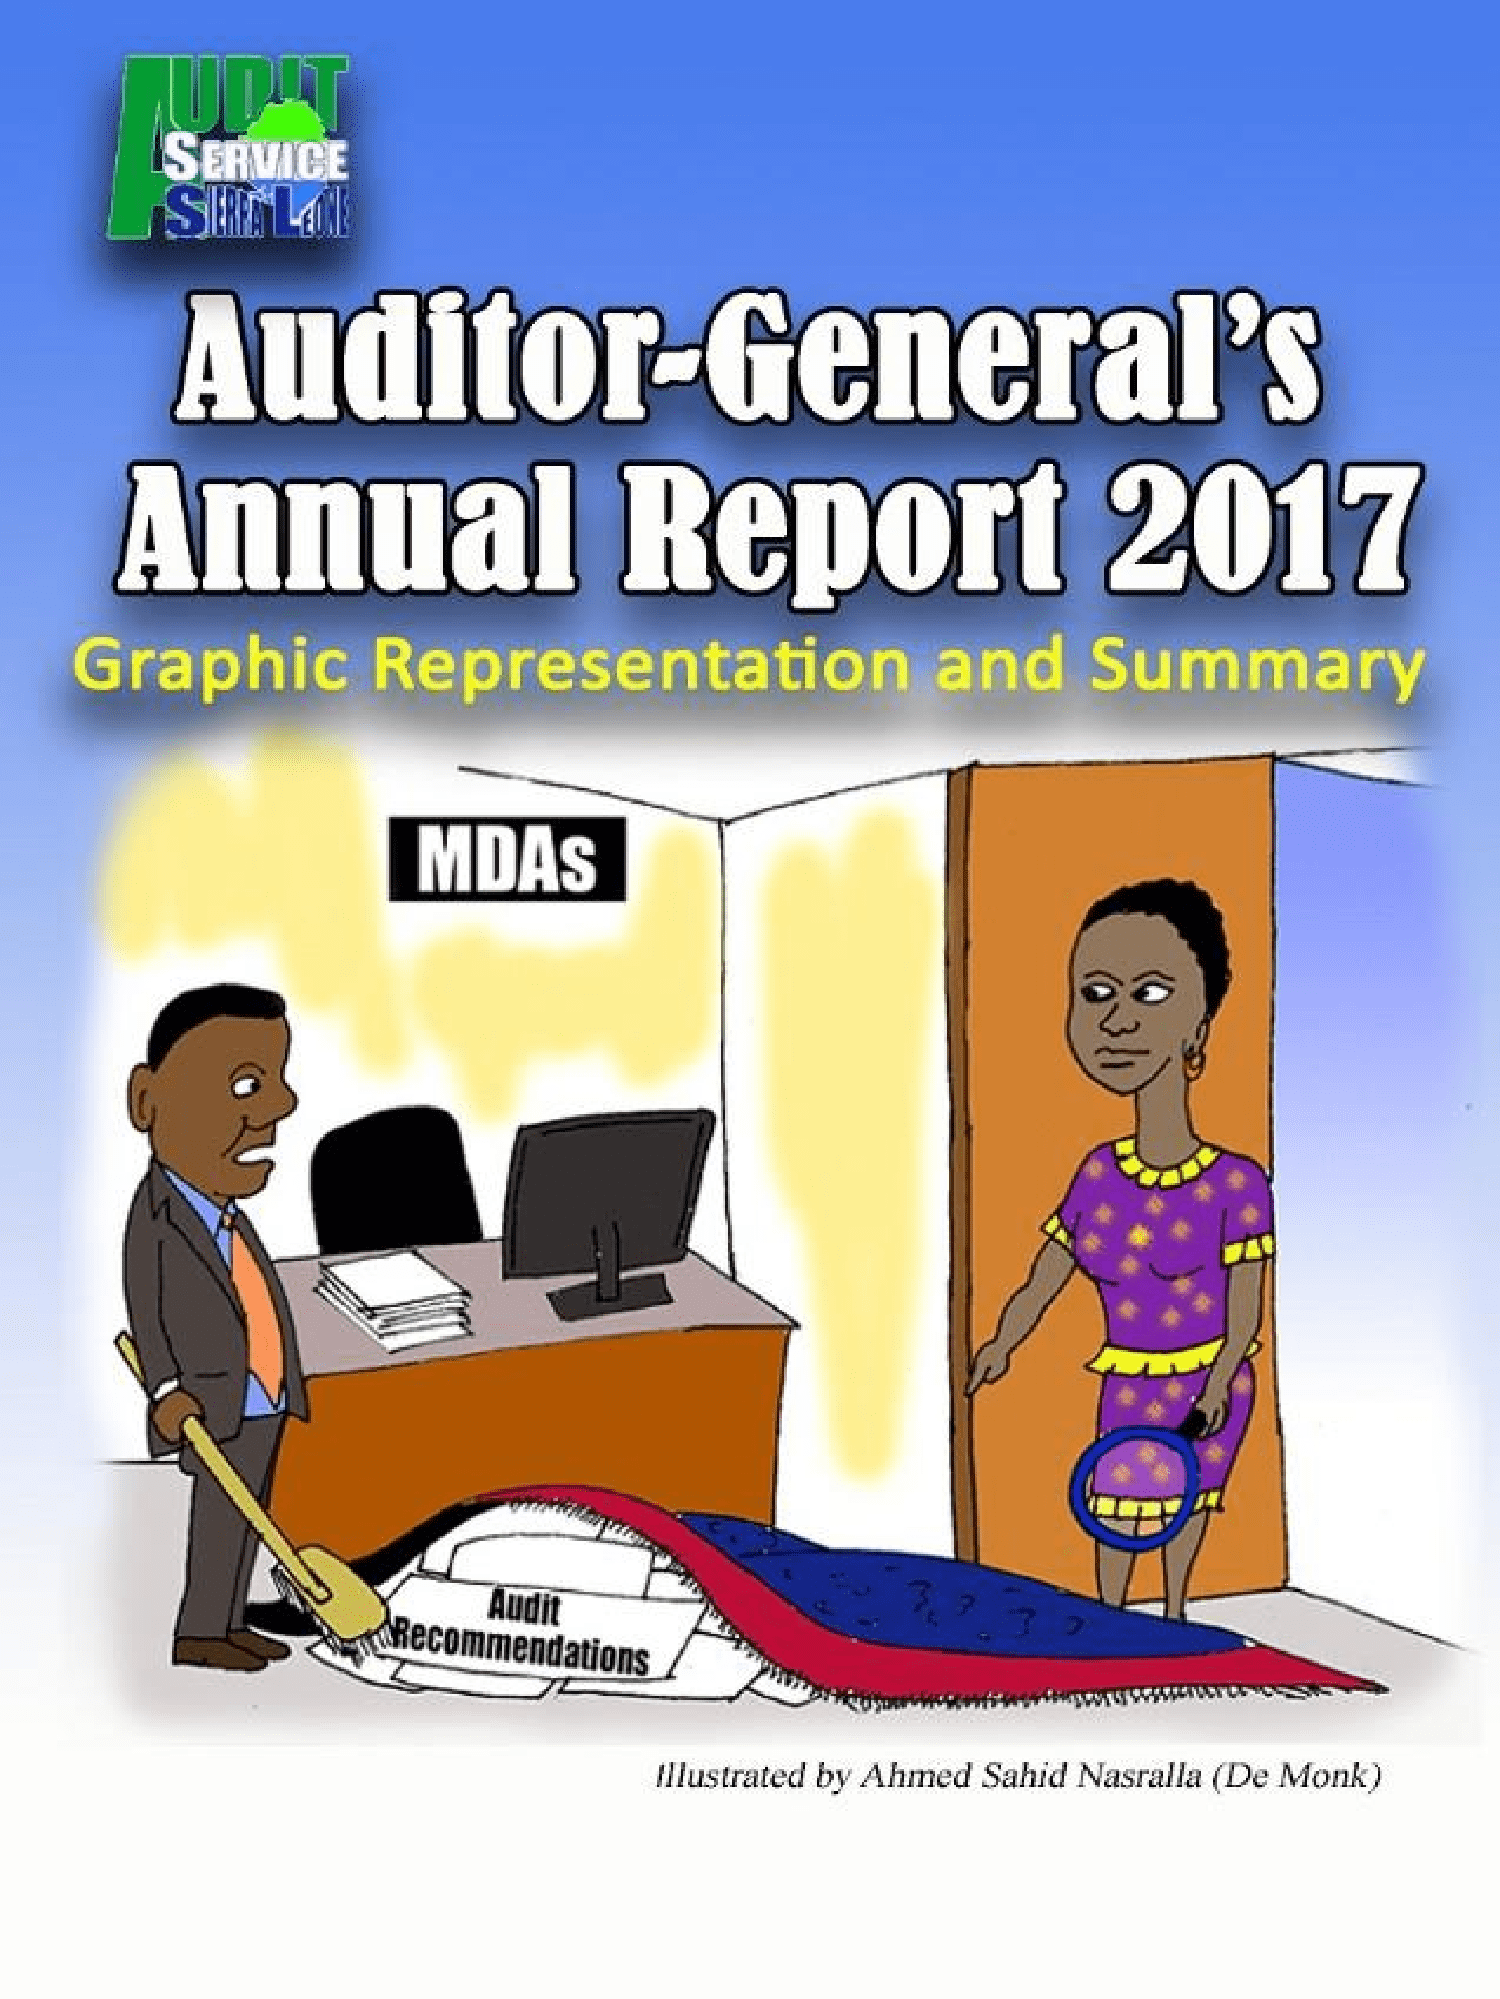 Graphic Summary on the Auditor-General's Report 2017 (002)_Page_1